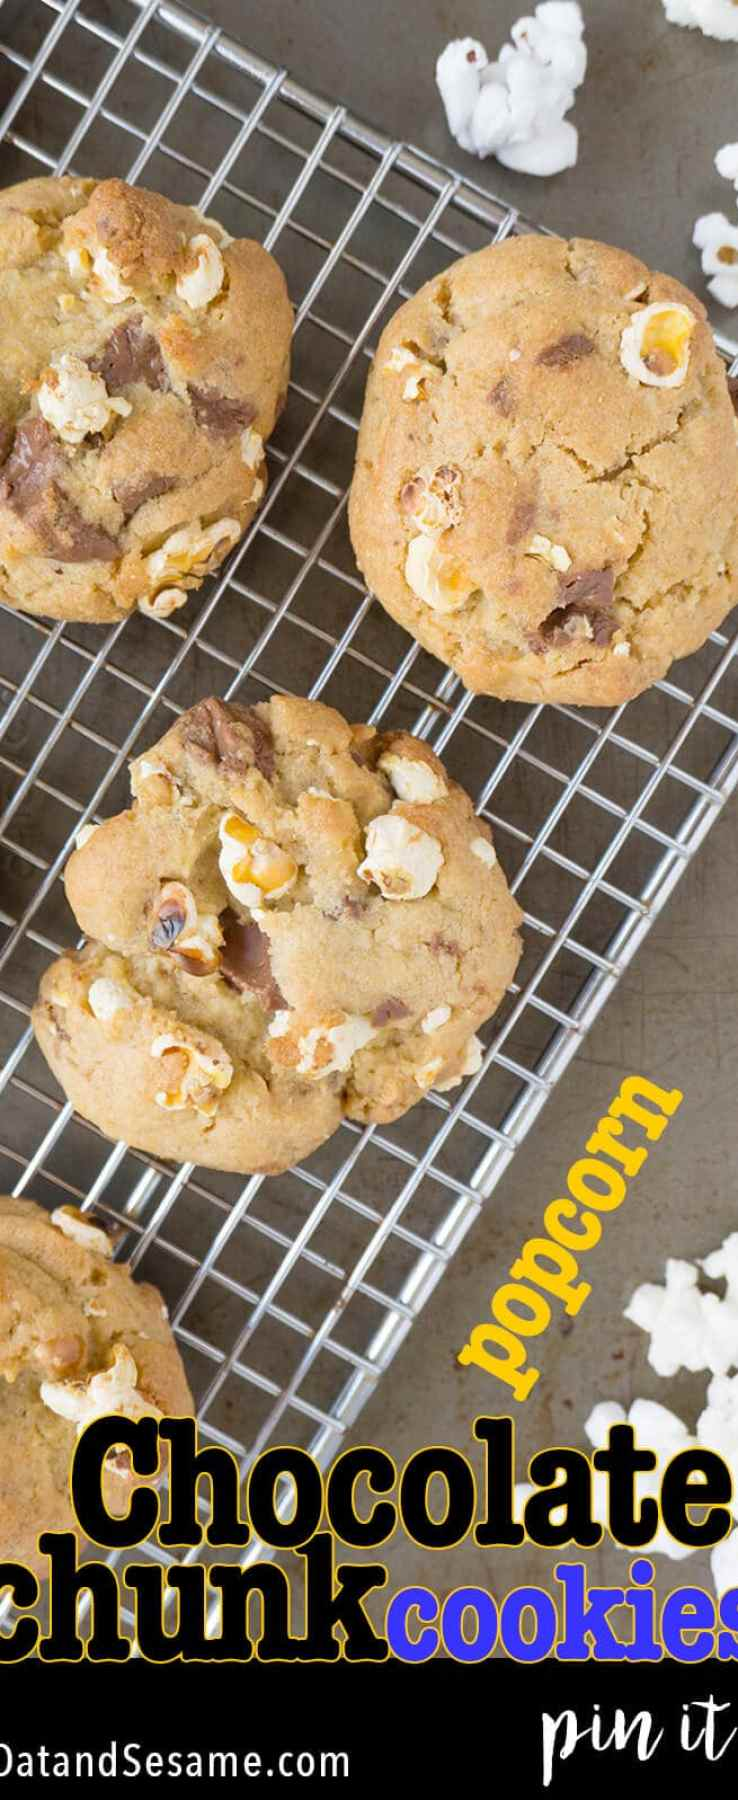 Salty + Sweet - Popcorn Chocolate Chunk Cookies! I've combined my FAVORITE Chocolate Chip Cookie Recipe with Popcorn! Modeled after Tony's Discodip special edition chocolate bar. Who is Tony? Read the post to find out! | #COOKIES | #POPCORN | #SWEETS | #Recipes at OatandSesame.com